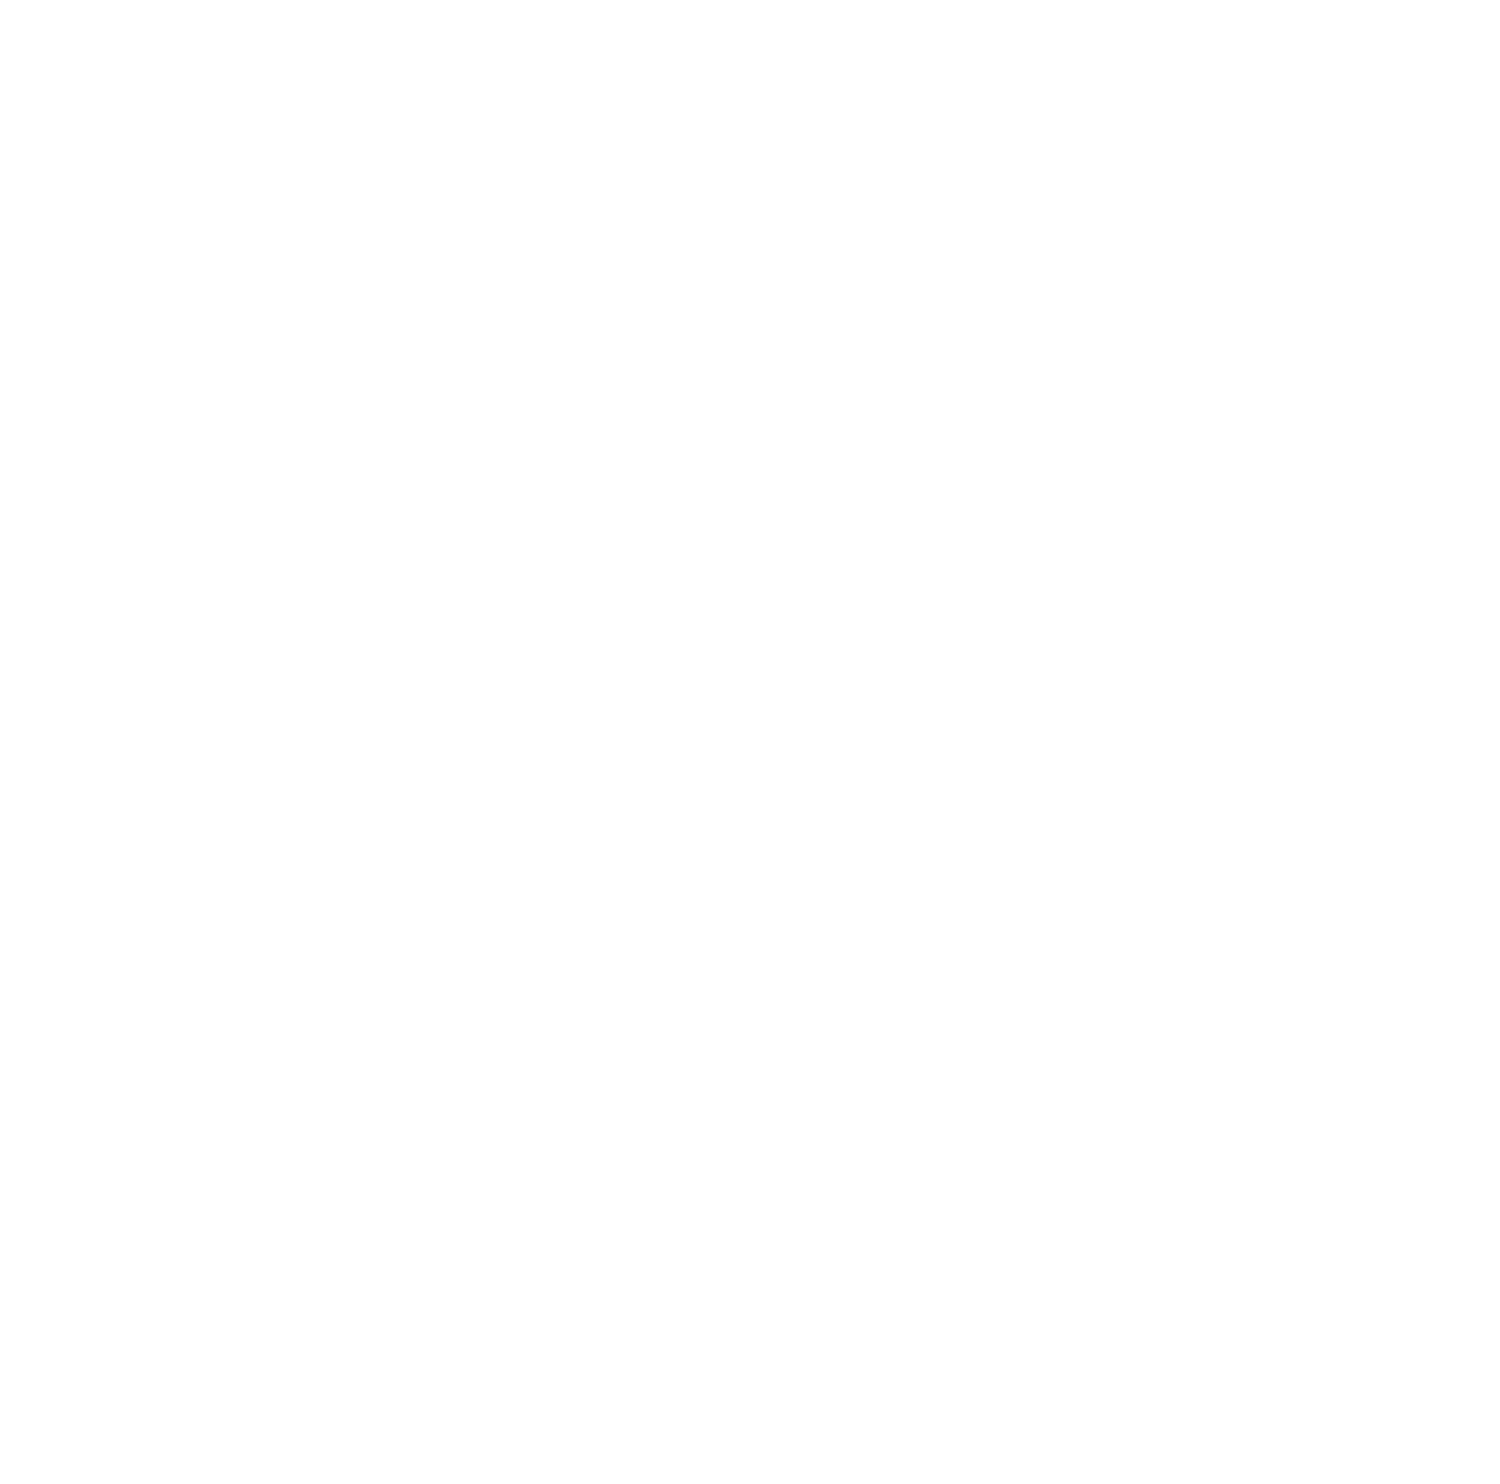 Pedal To The People